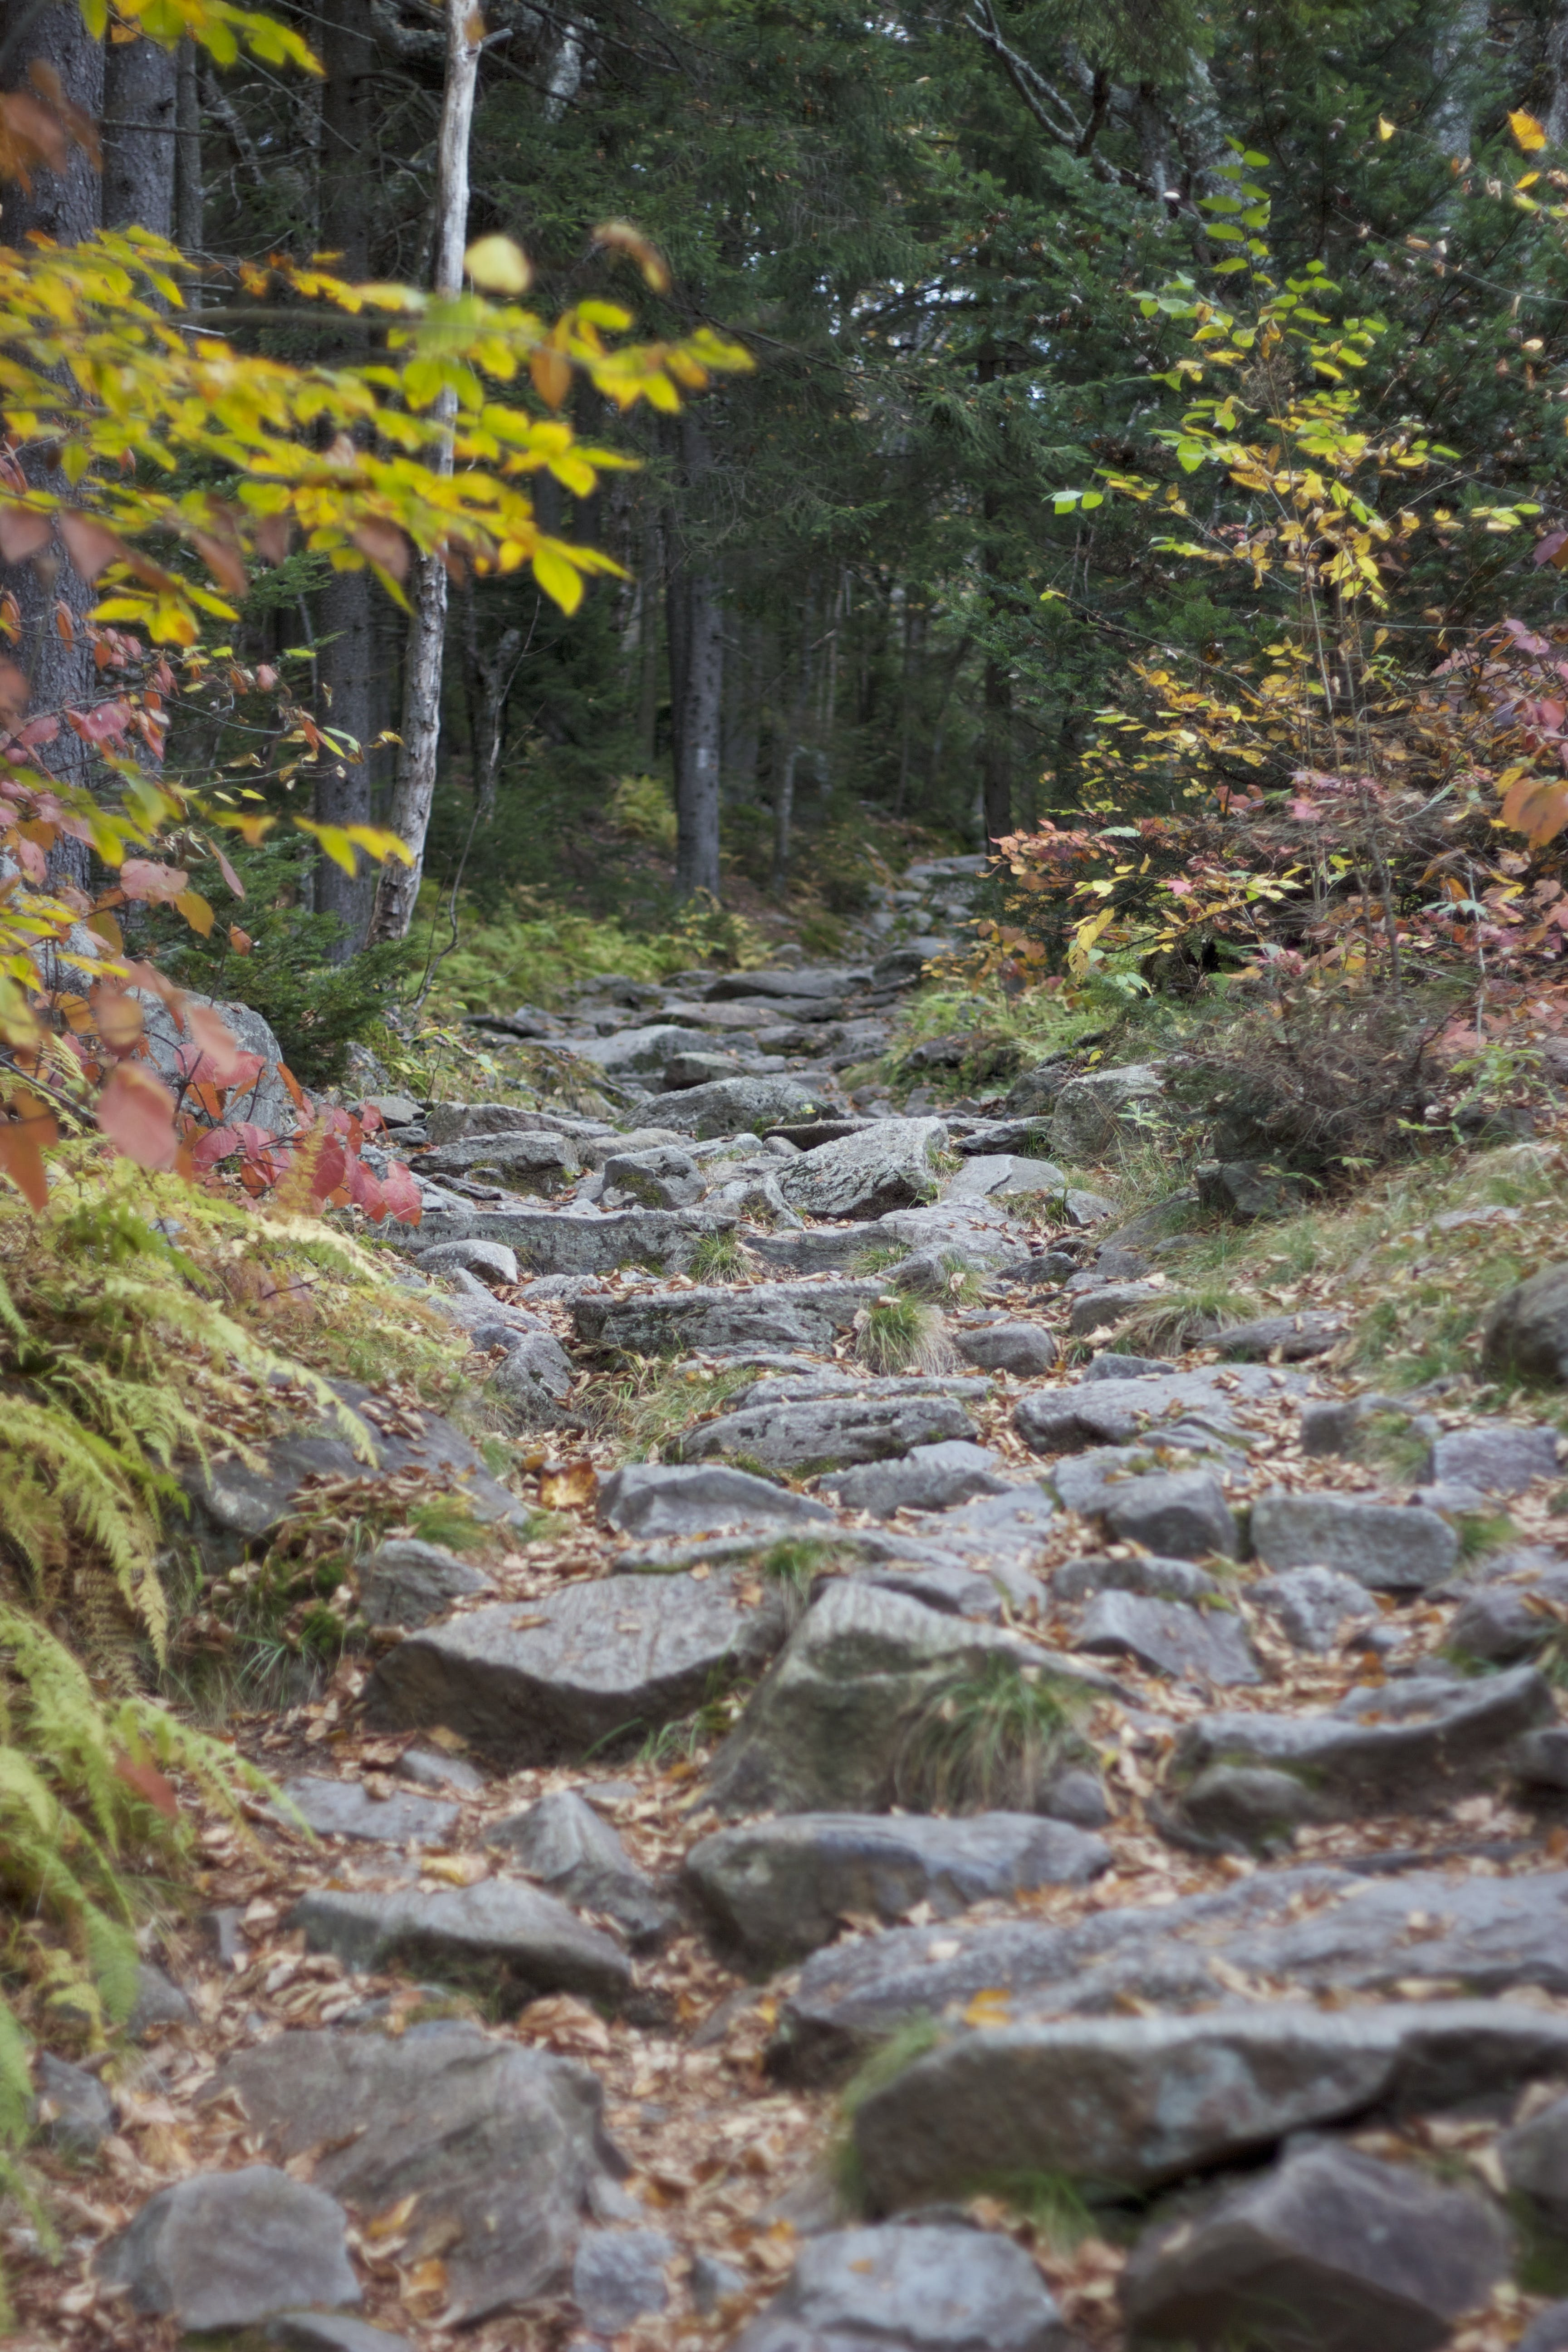 Rocky Pathway Surrounded by Trees